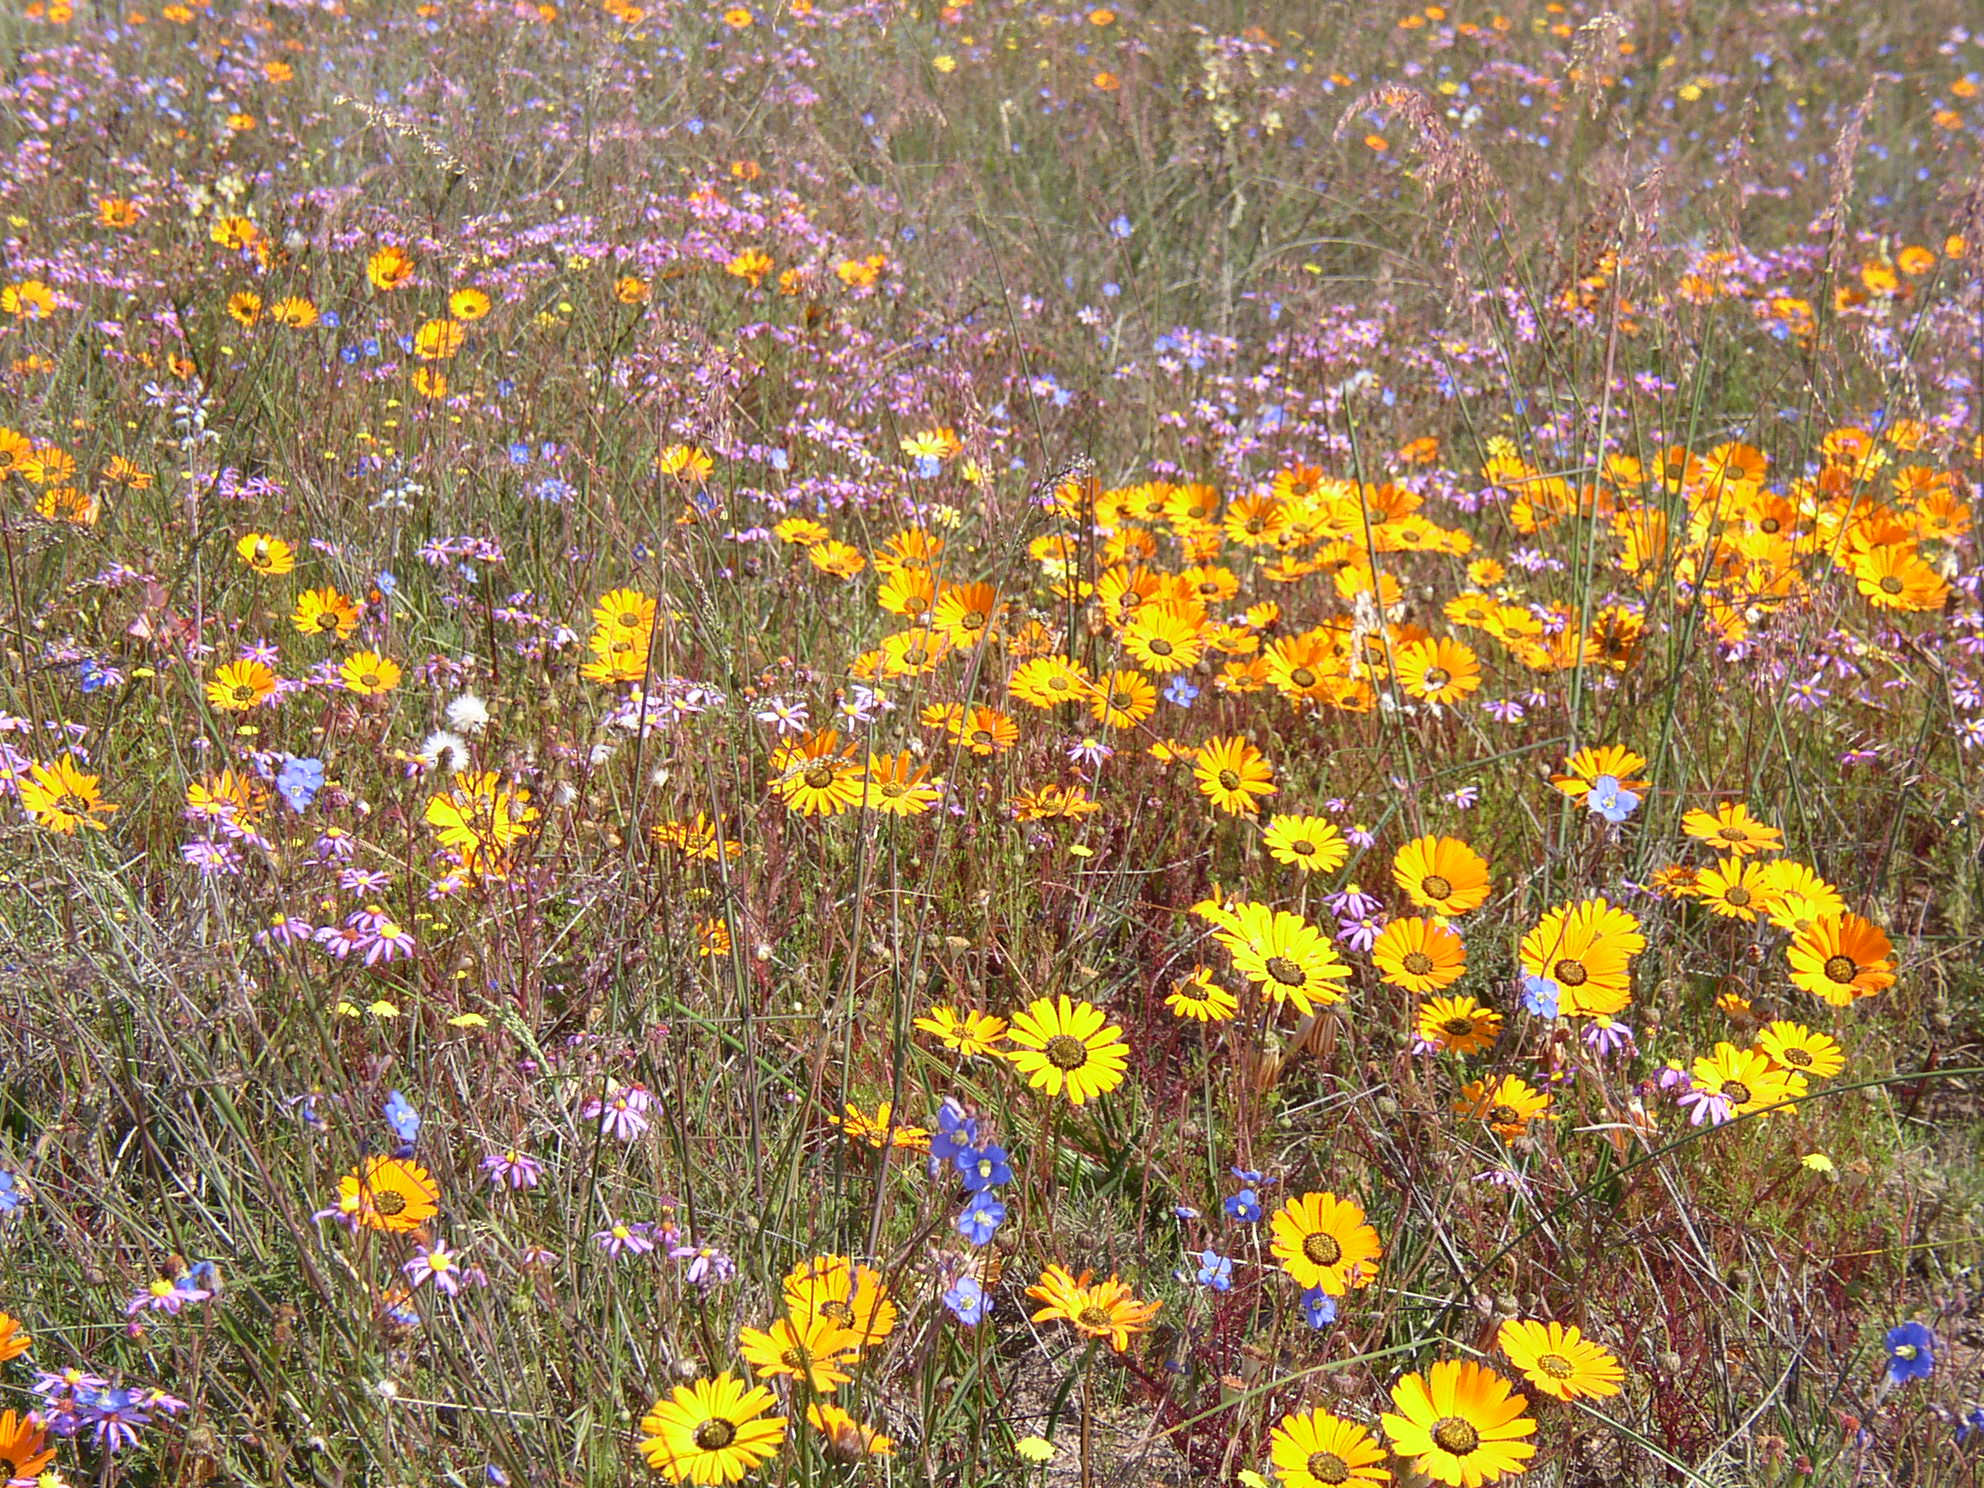 Making your own wildflower bouquet